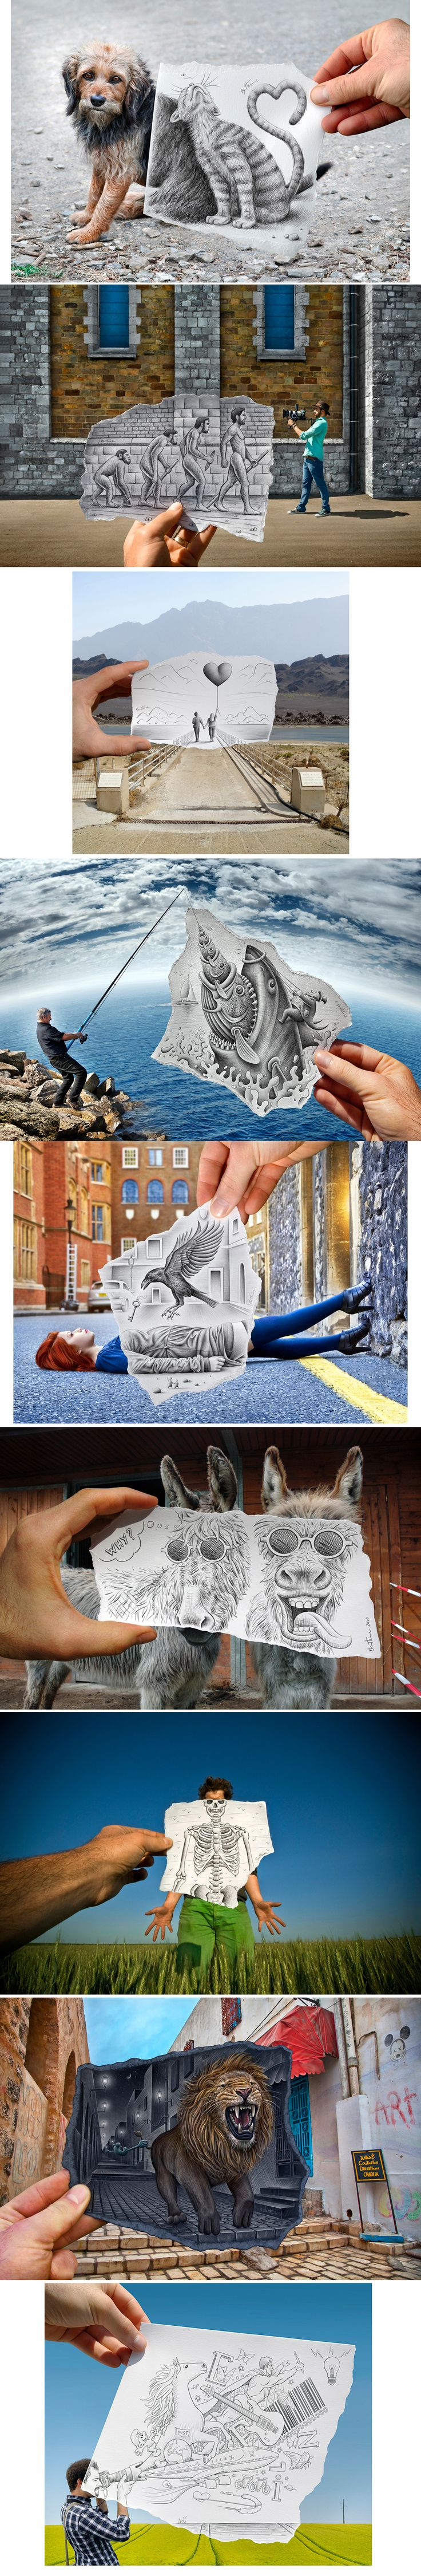 Photography and Drawing Combined- Ben Heine